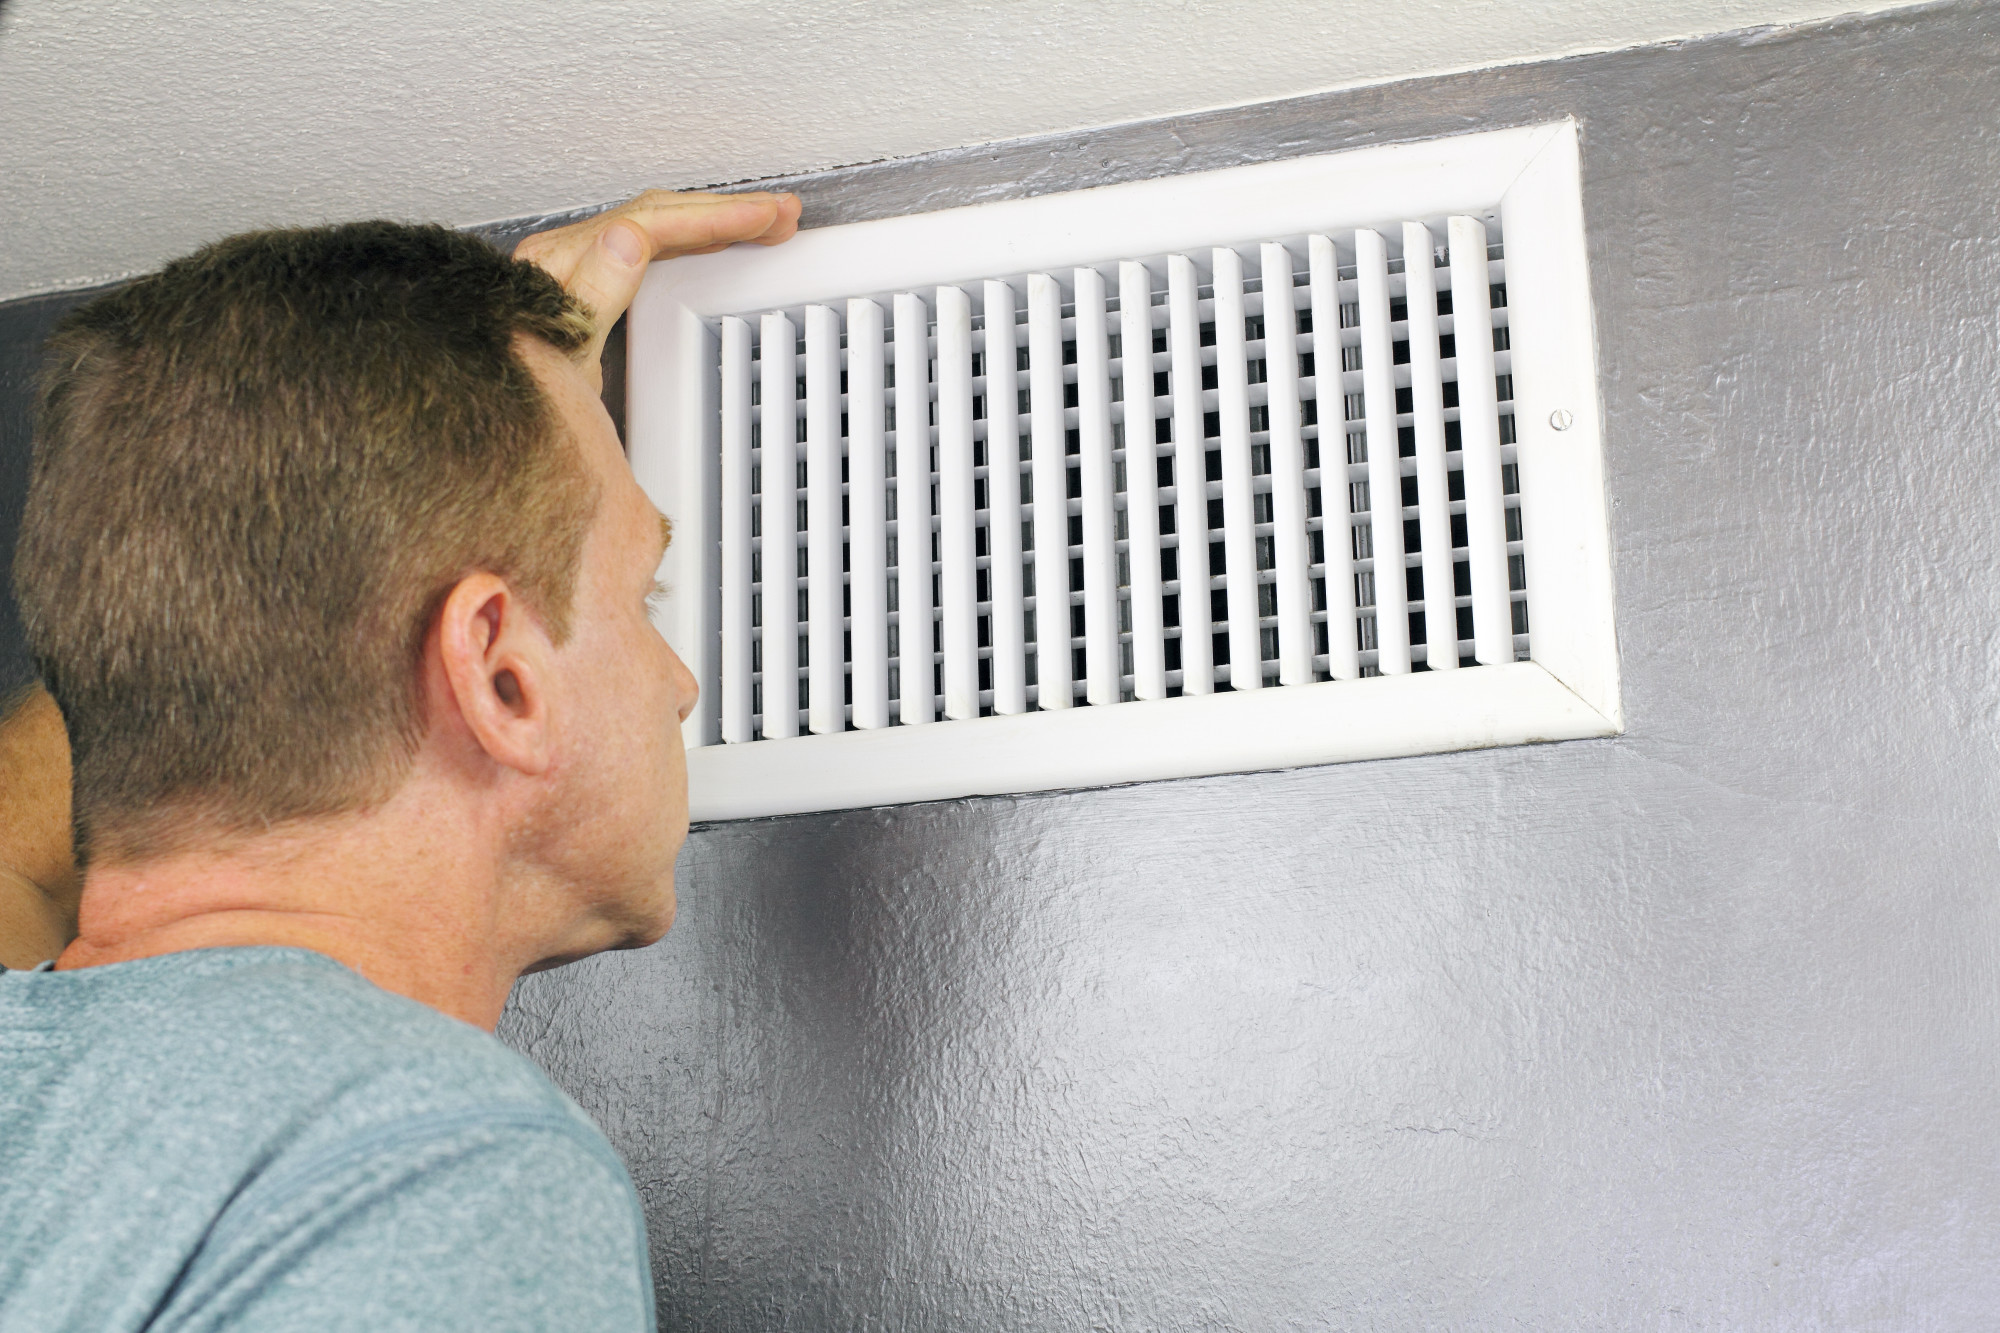 It is important to properly prepare your HVAC system to face the summer heat. Check out this helpful guide to make sure your unit is ready to go.